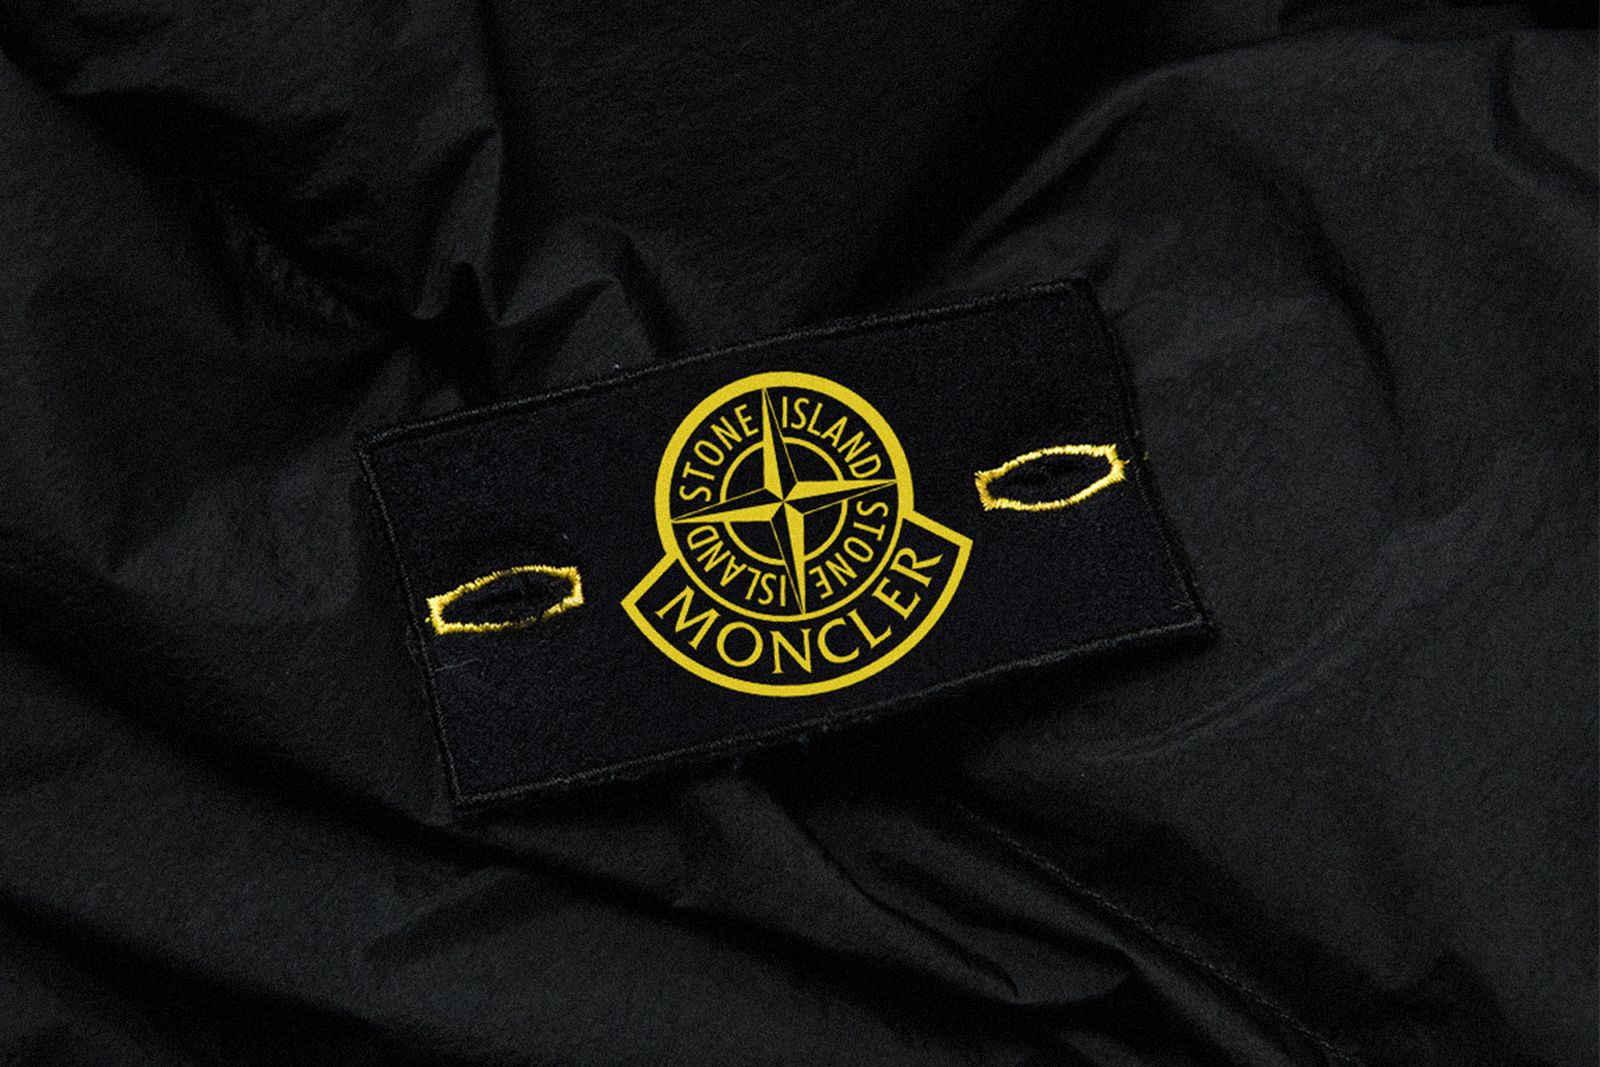 moncler-remo-ruffini-acquire-stone-island-interview-main01